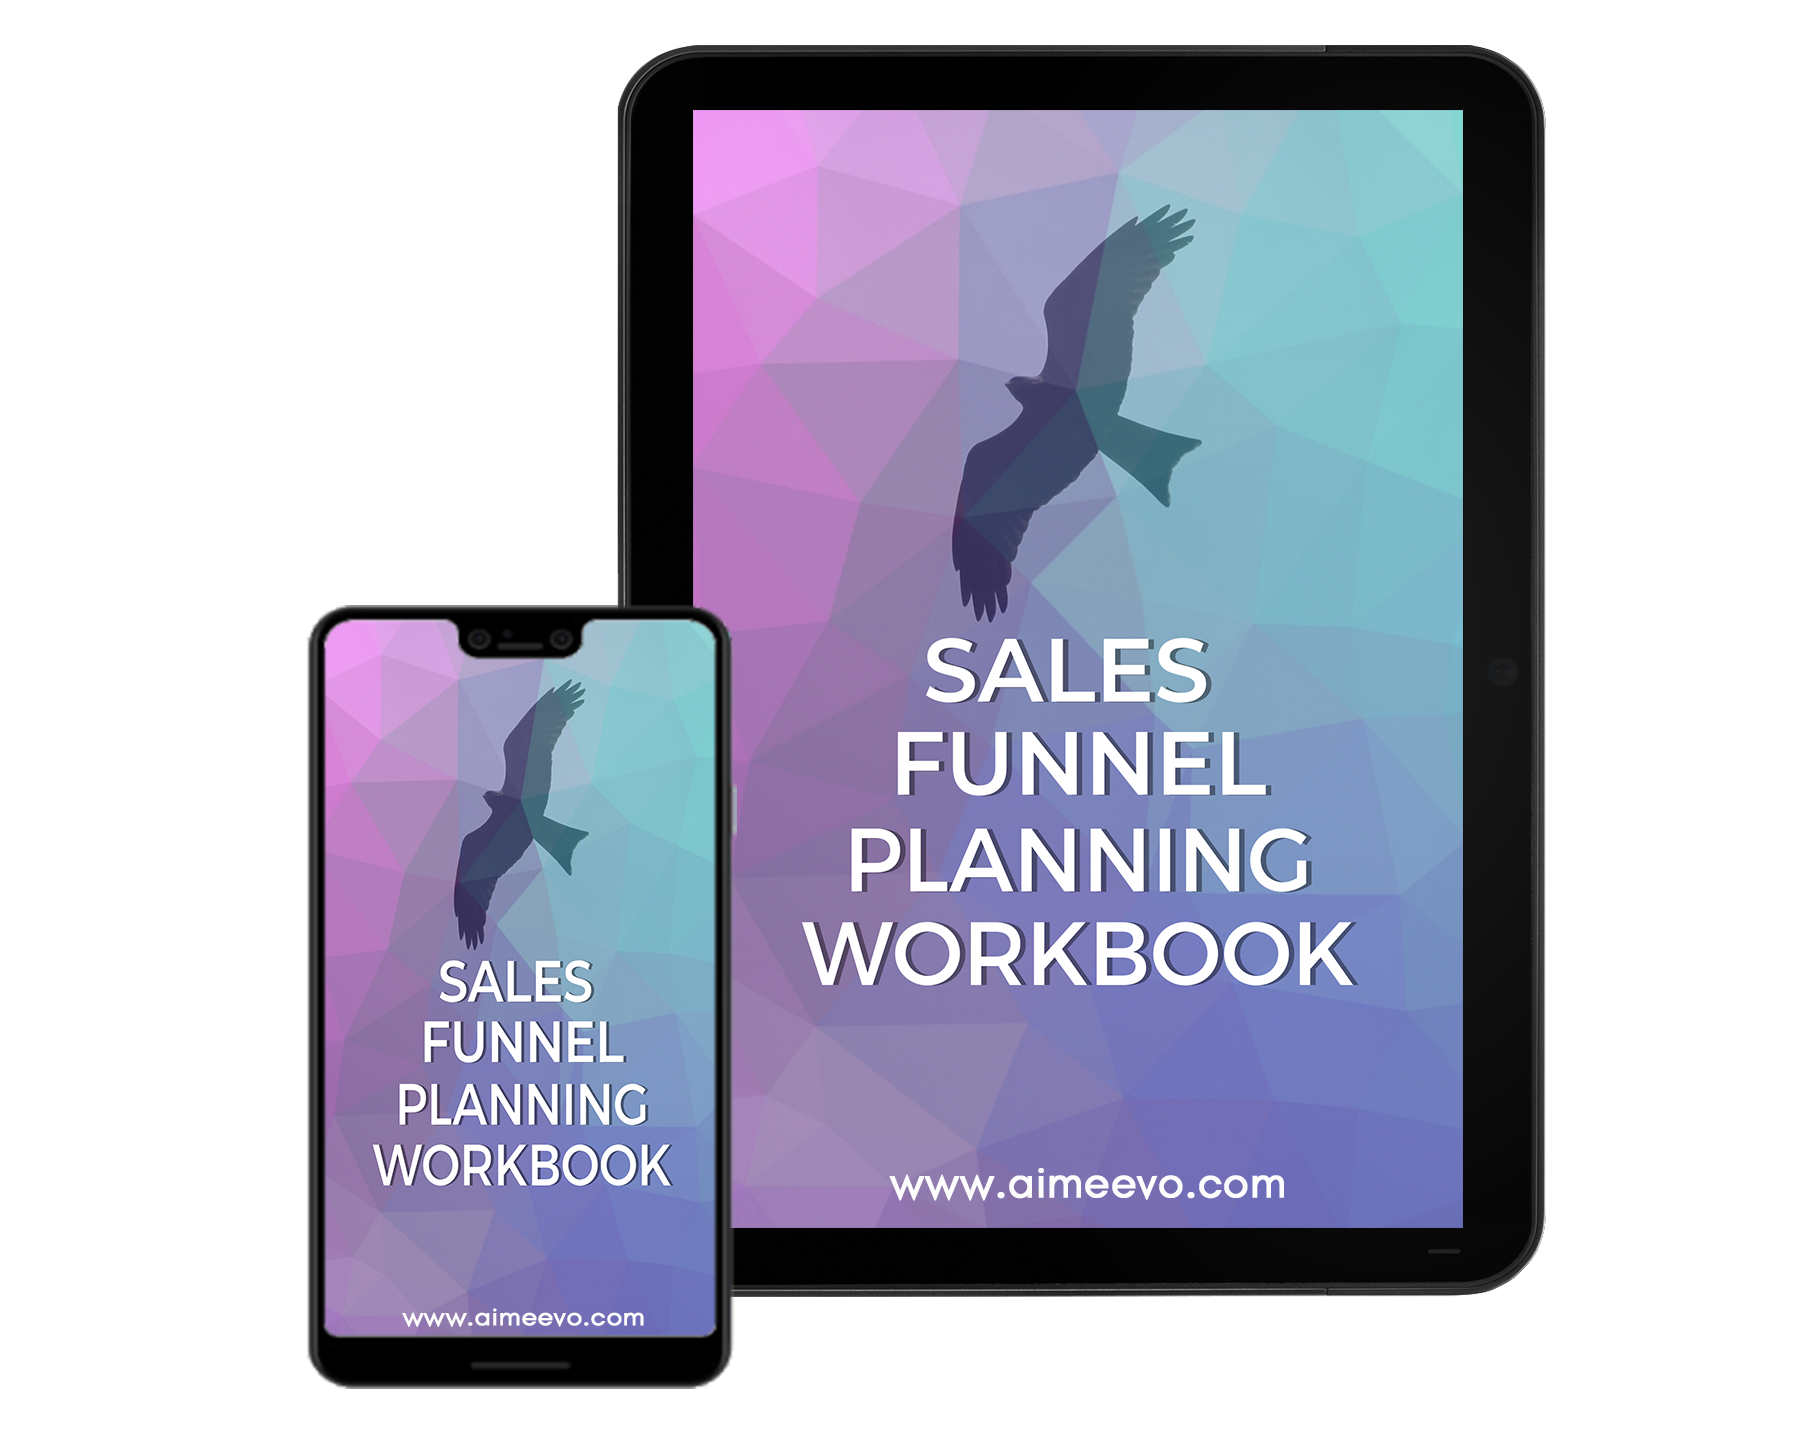 sales funnel planning workbook